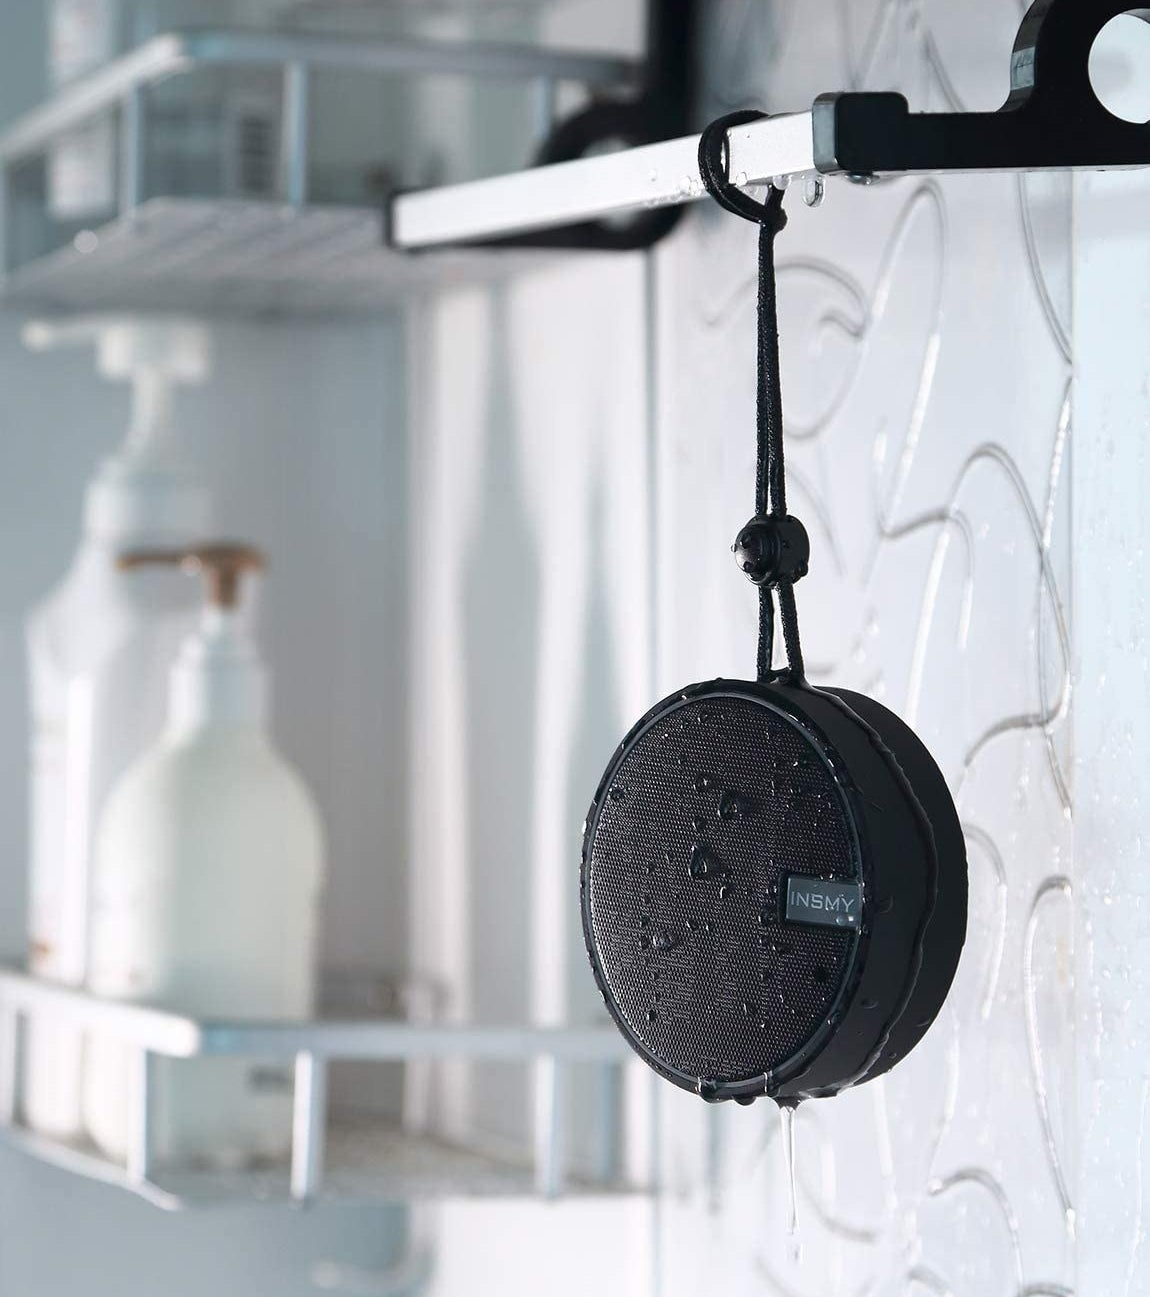 A wet INSMY bluetooth speaker hanging from a bathroom shelf